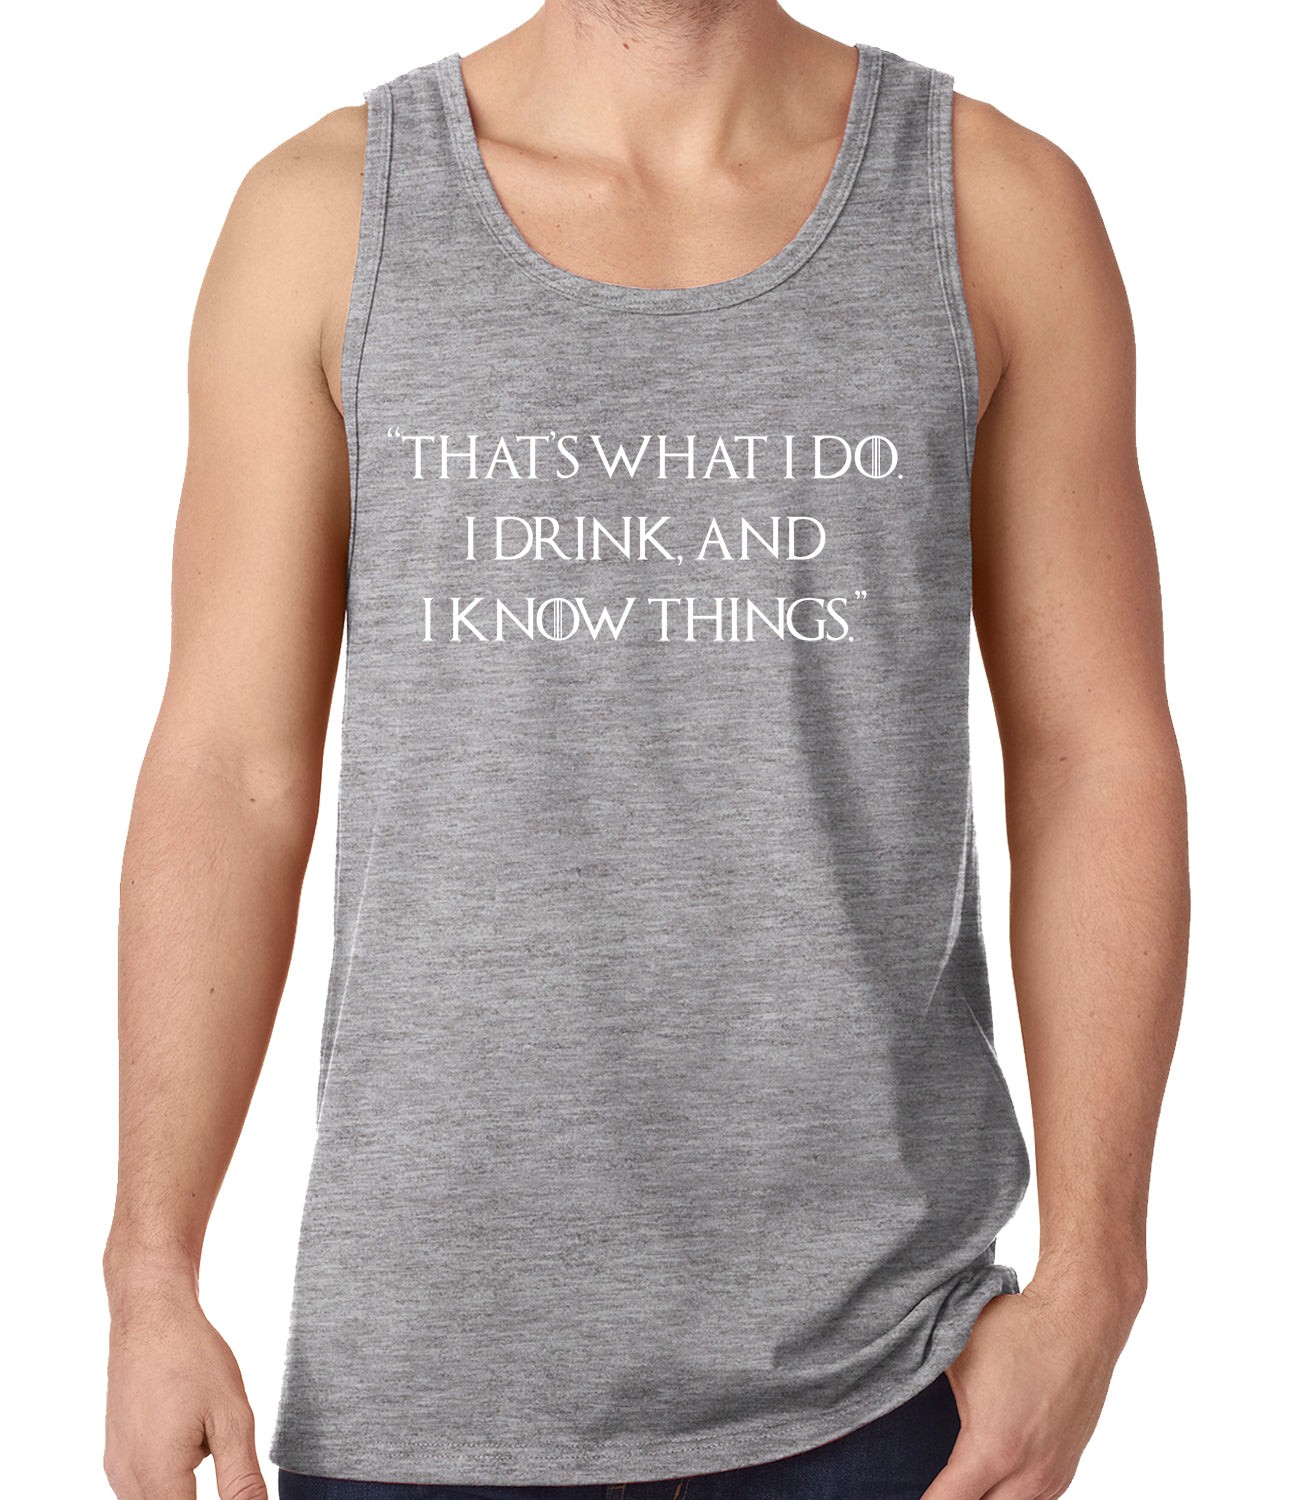 Thats What I Do. I Drink and I Know Things Tank Top